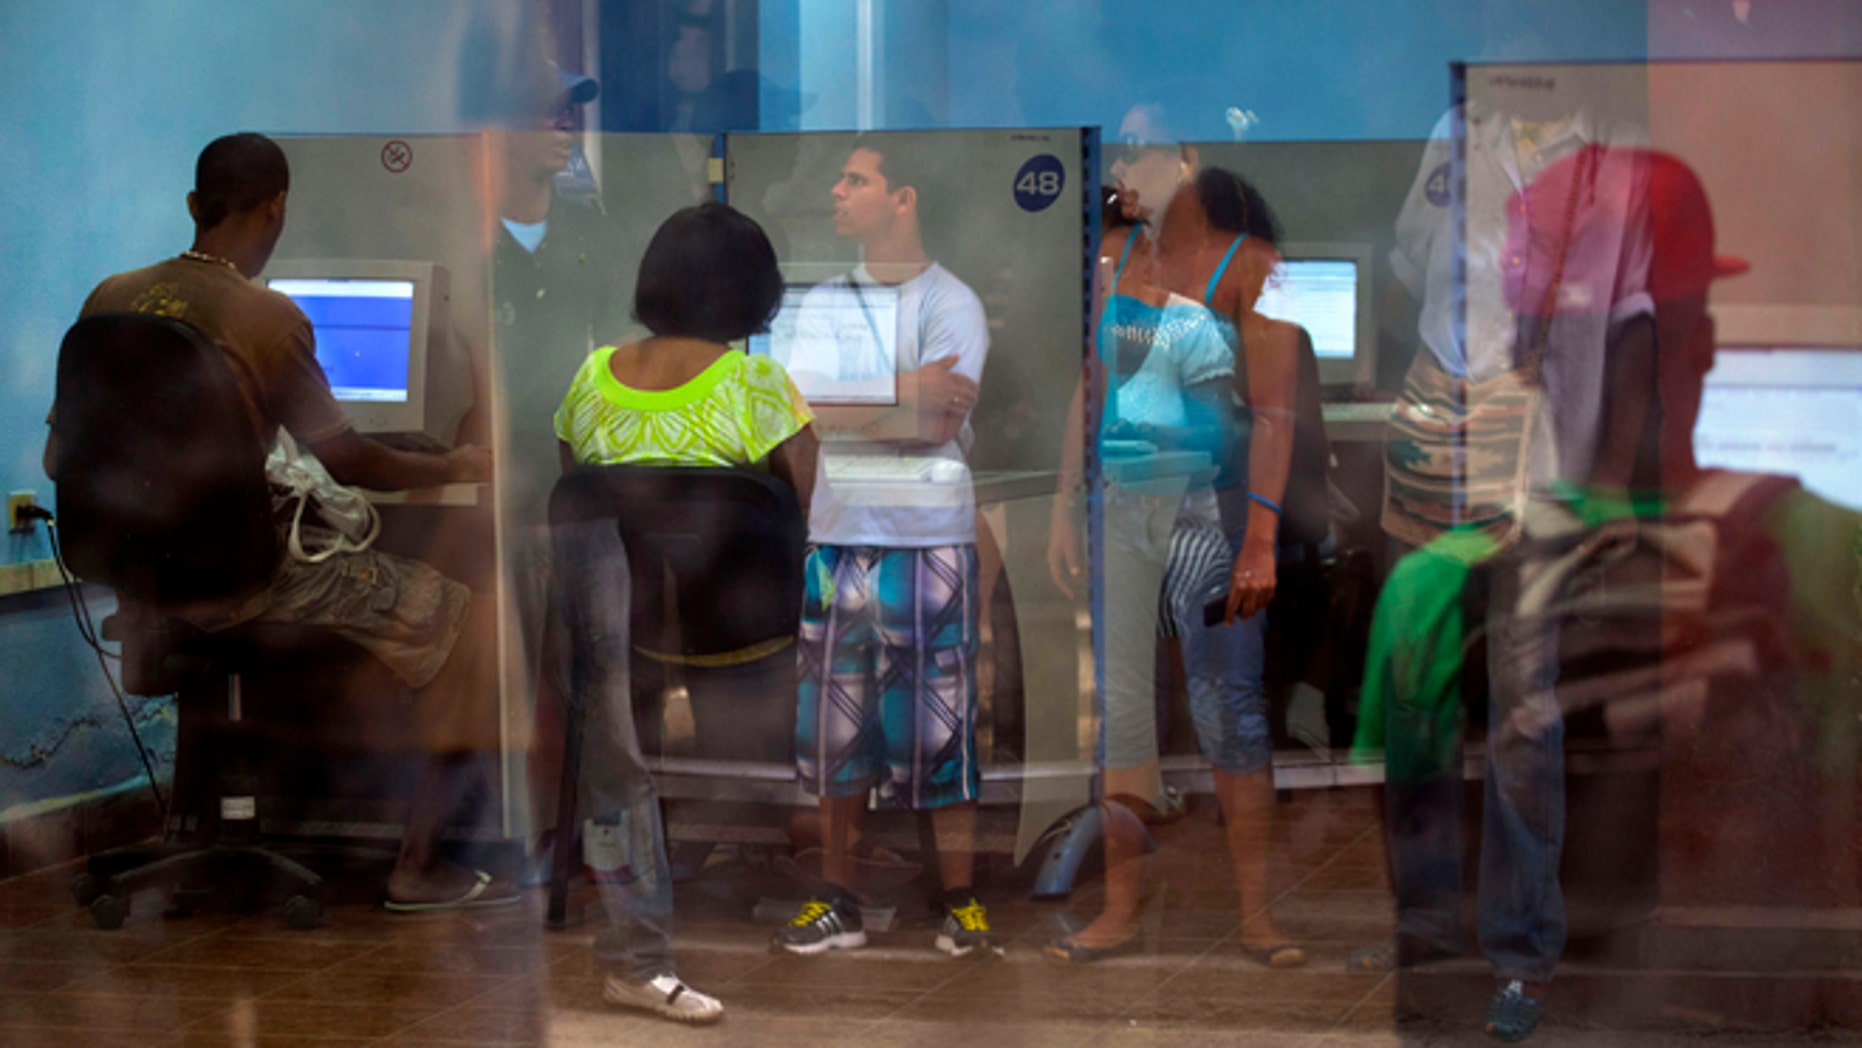 People line up at a post office as they wait to use the Internet service in Havana, Cuba, Tuesday, May 28, 2013.